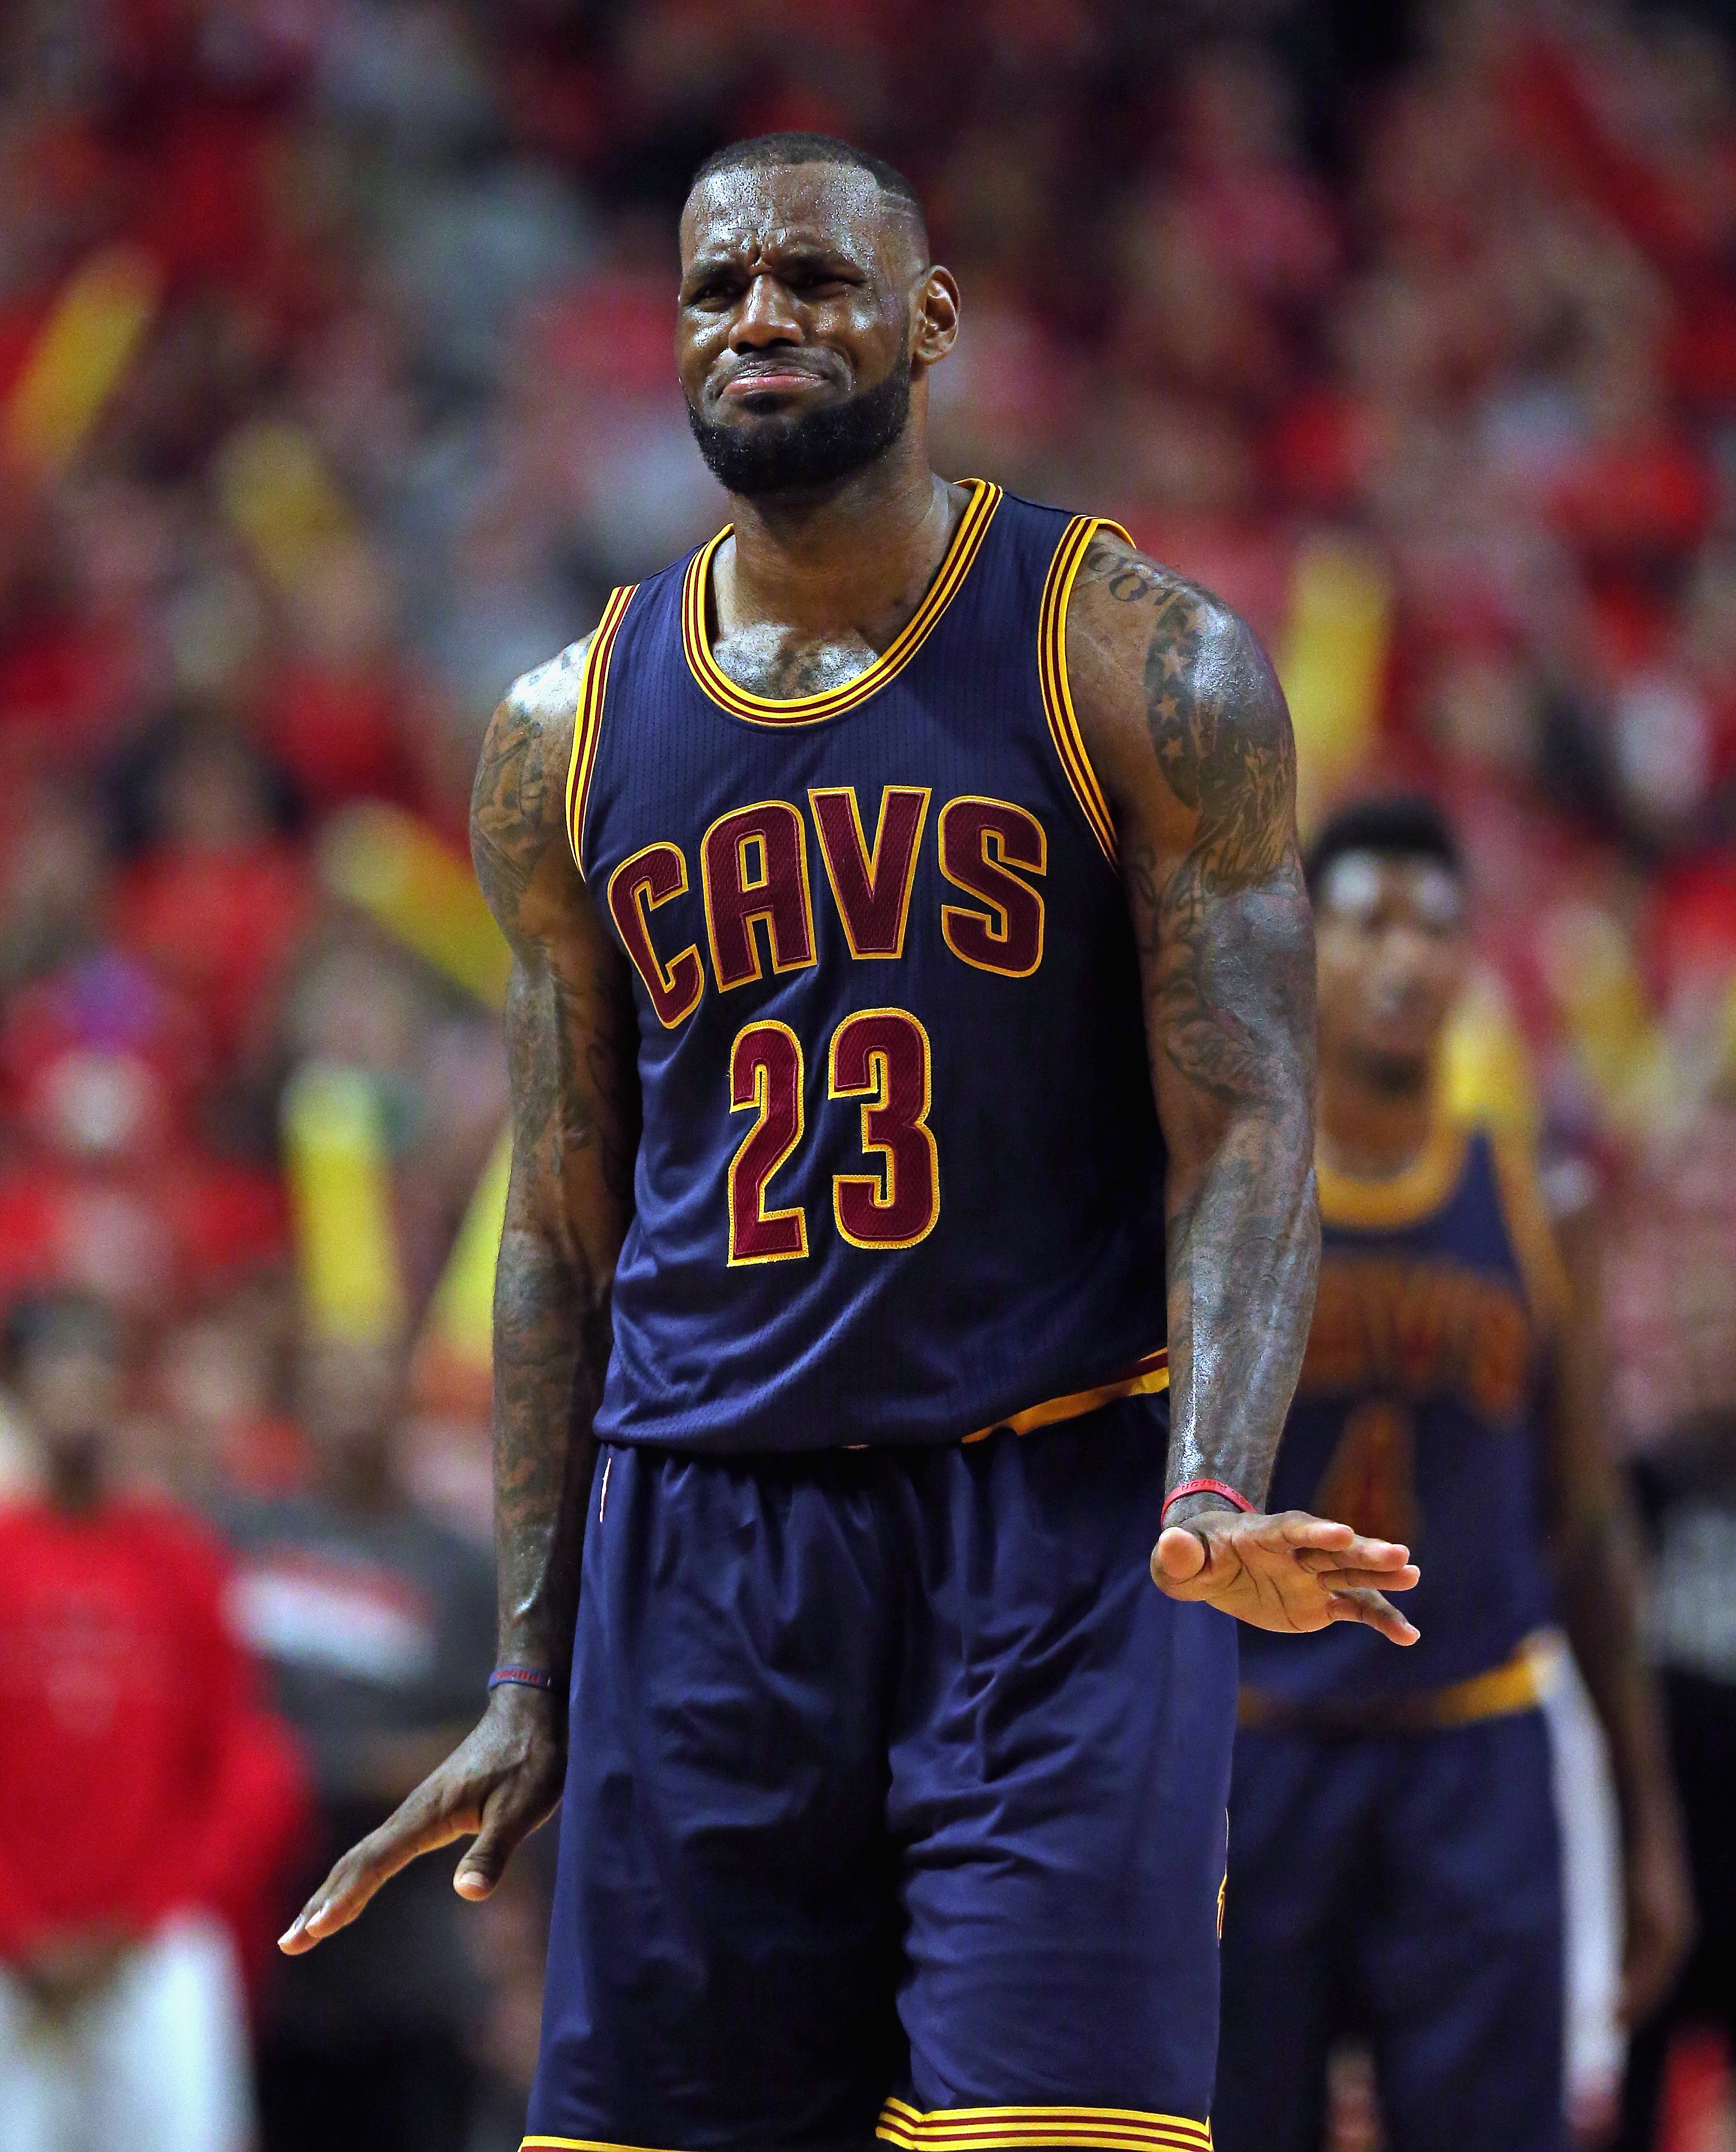 CHICAGO, IL - MAY 10: LeBron James #23 of the Cleveland Cavaliers reacts after being called for a foul against the Chicago Bulls in Game Four of the Eastern Conference Semifinals of the 2015 NBA Playoffs at the United Center on May 10, 2015 in Chicago, Il